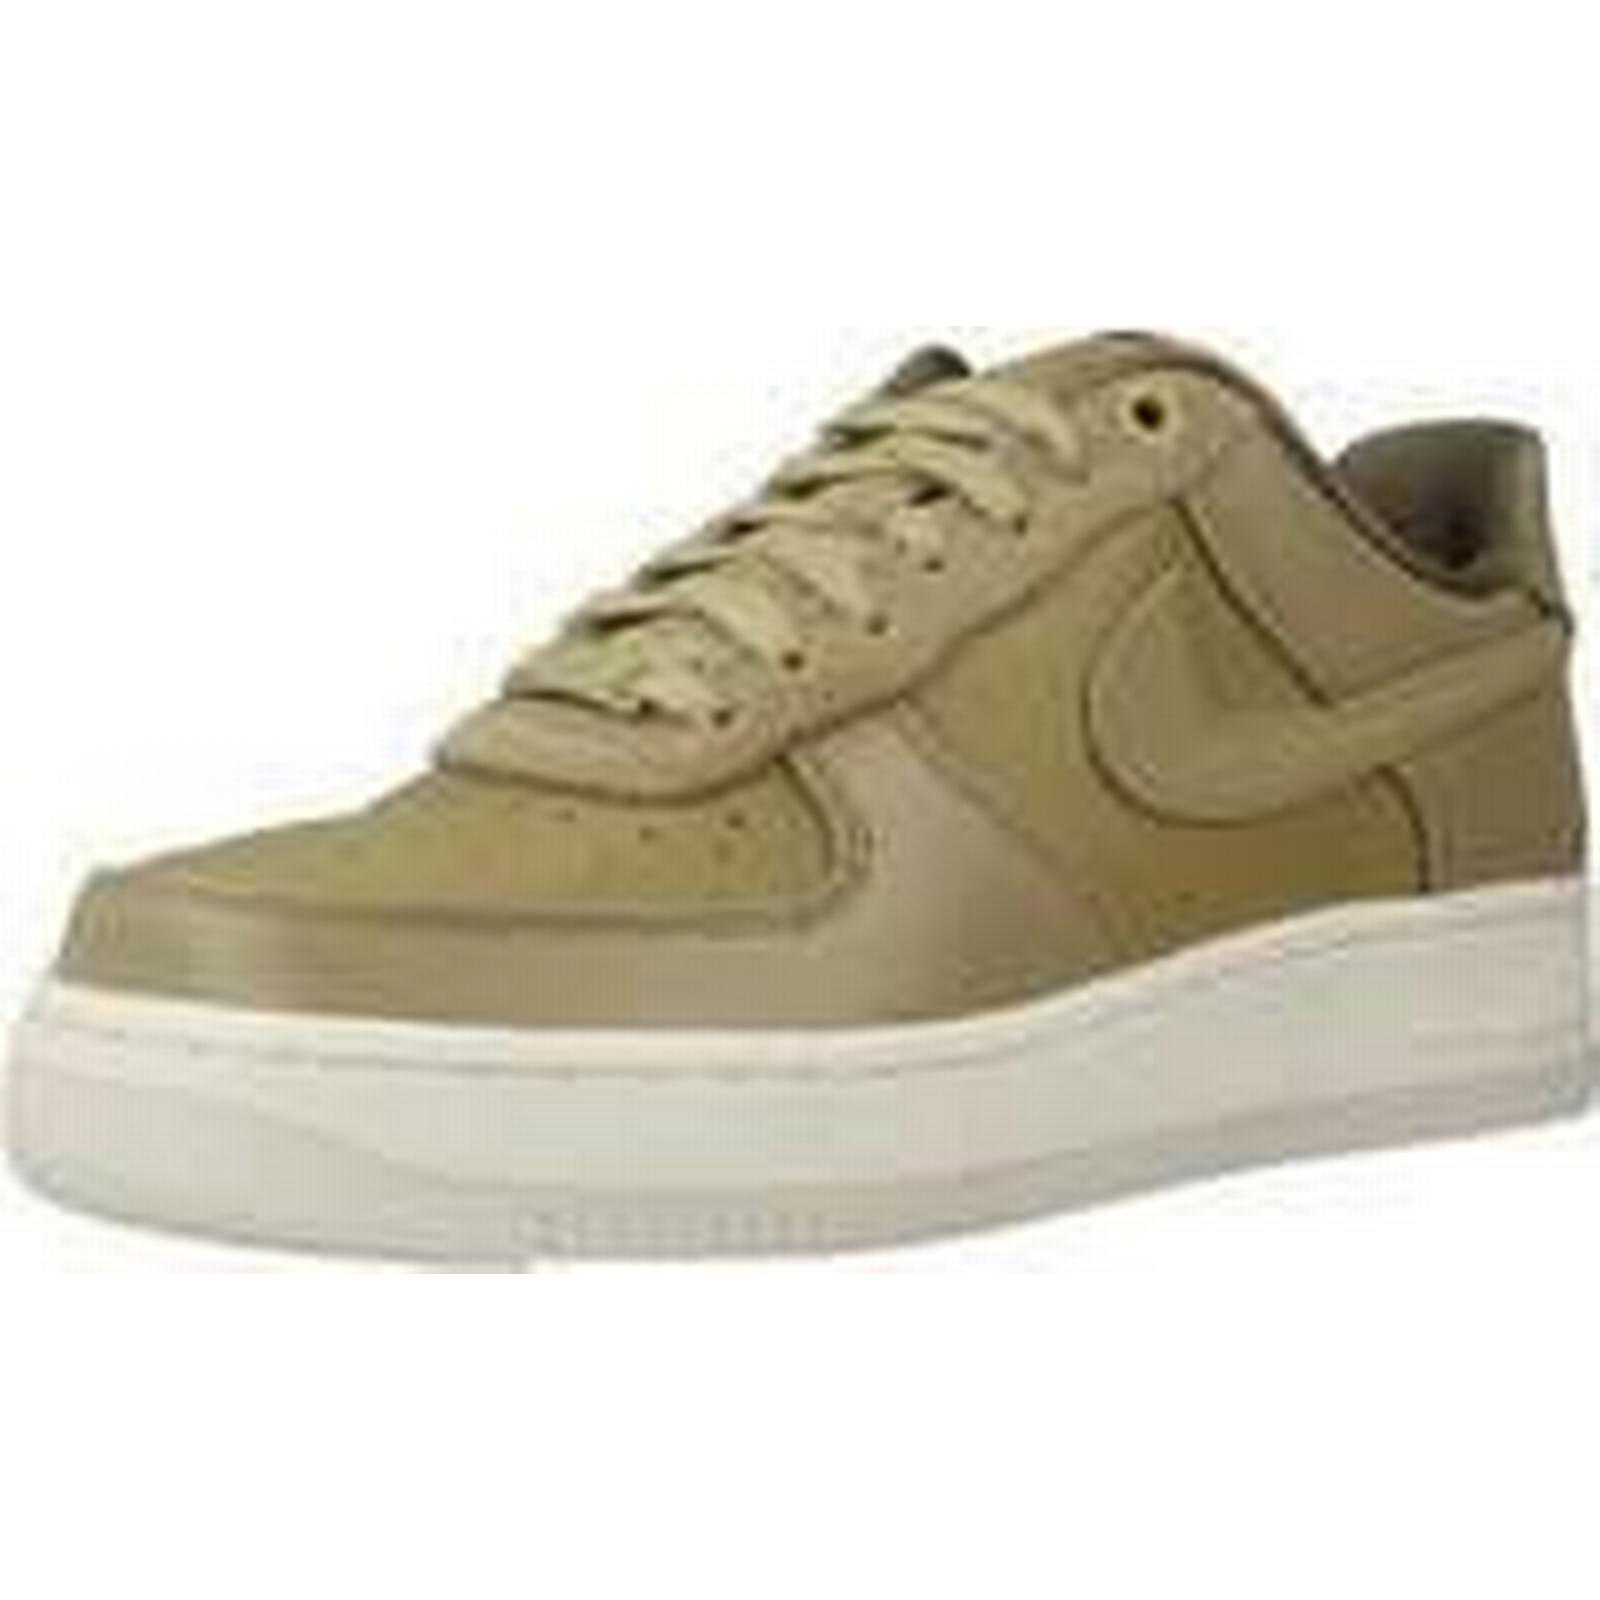 Spartoo.co.uk women's Nike AIR FORCE 1 07 LX women's Spartoo.co.uk Shoes (Trainers) in Green 184779